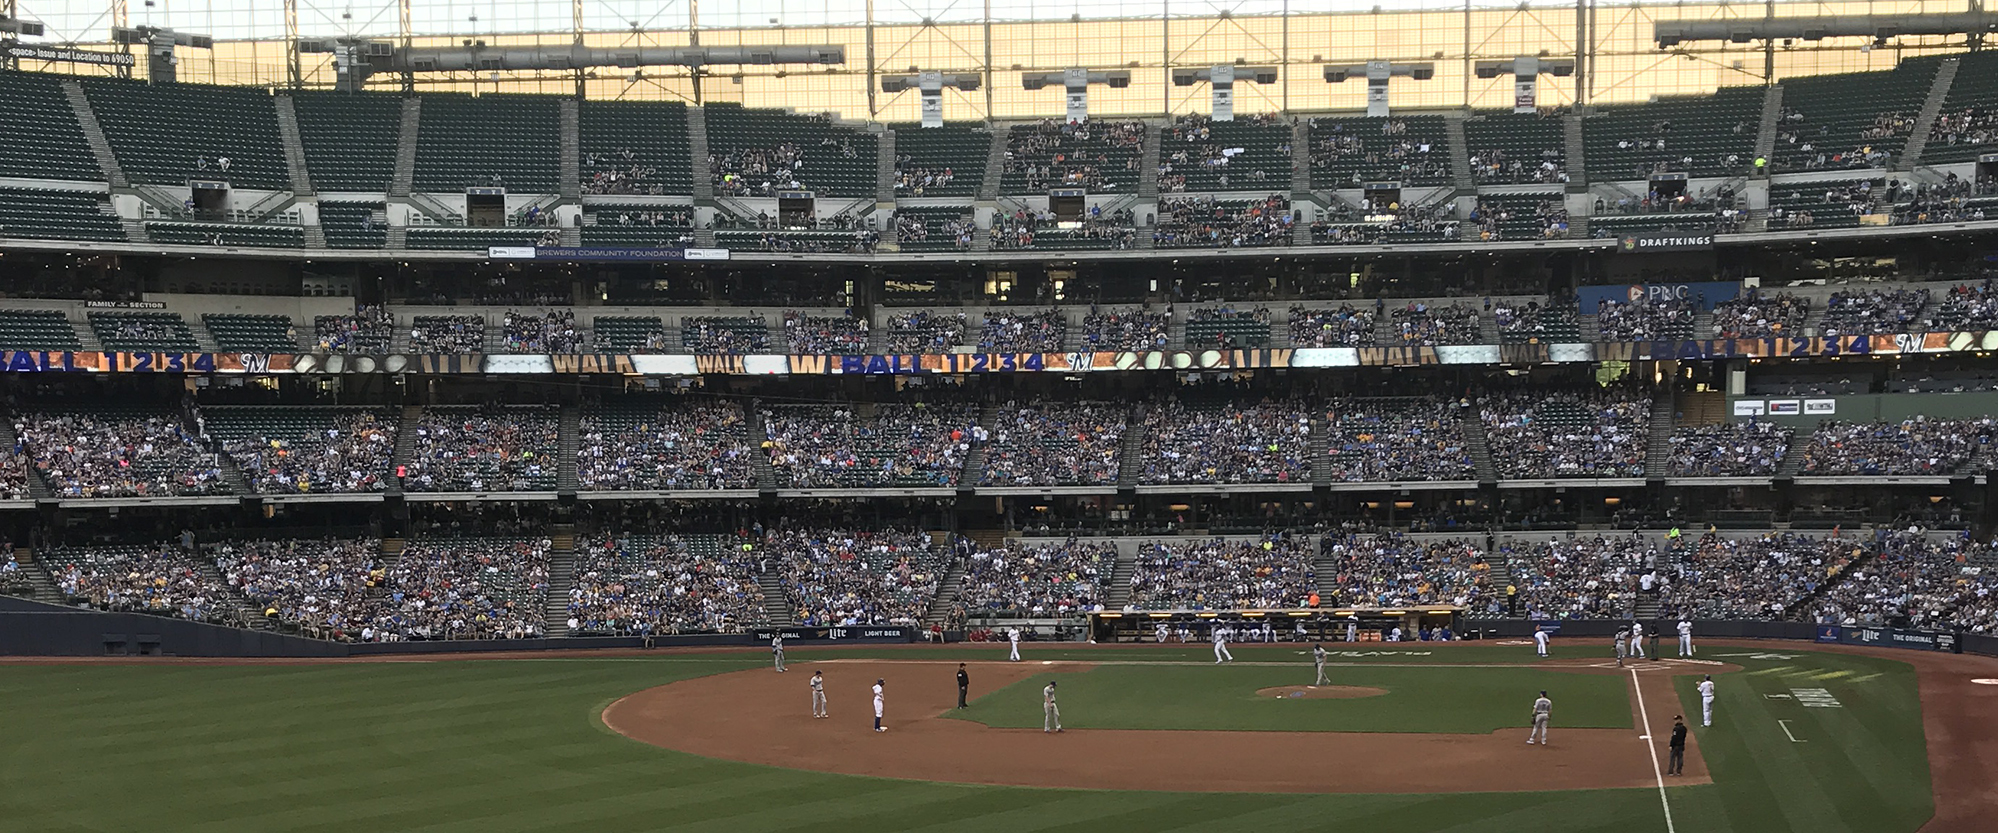 Photo from seats at Miller Park